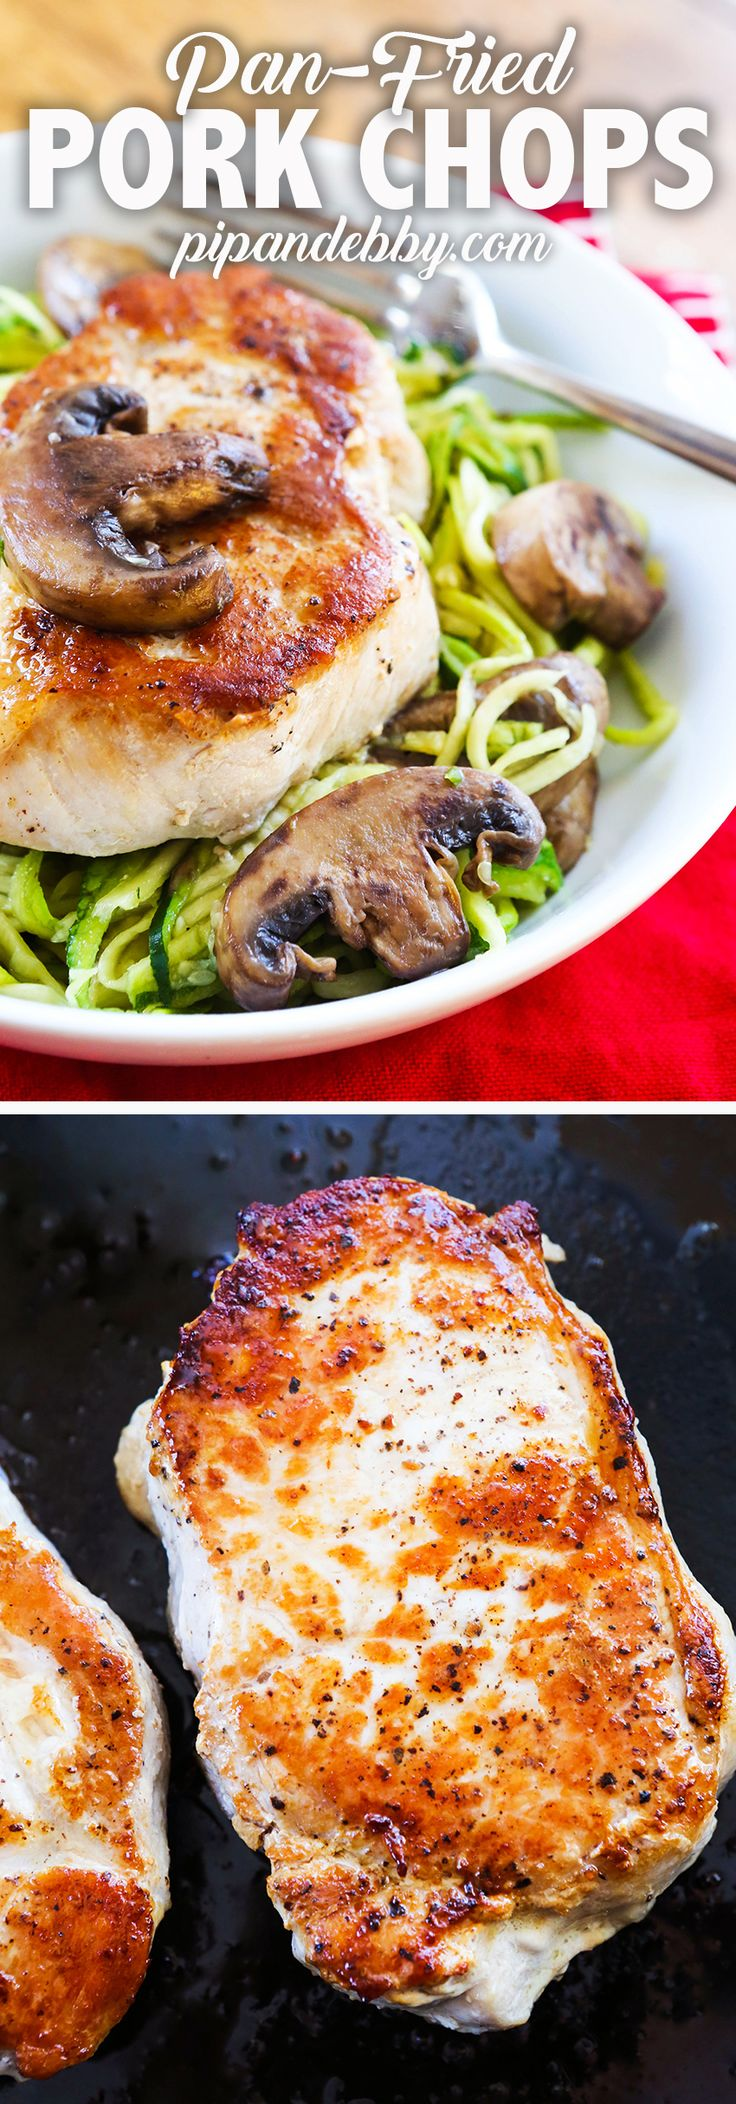 Pan-Fried Pork Chops | I will never prepare pork another way again. Make the pork chops while steaming some veggies and dinner will be done in less than 20 minutes! #whole30 #dinner #porkchops